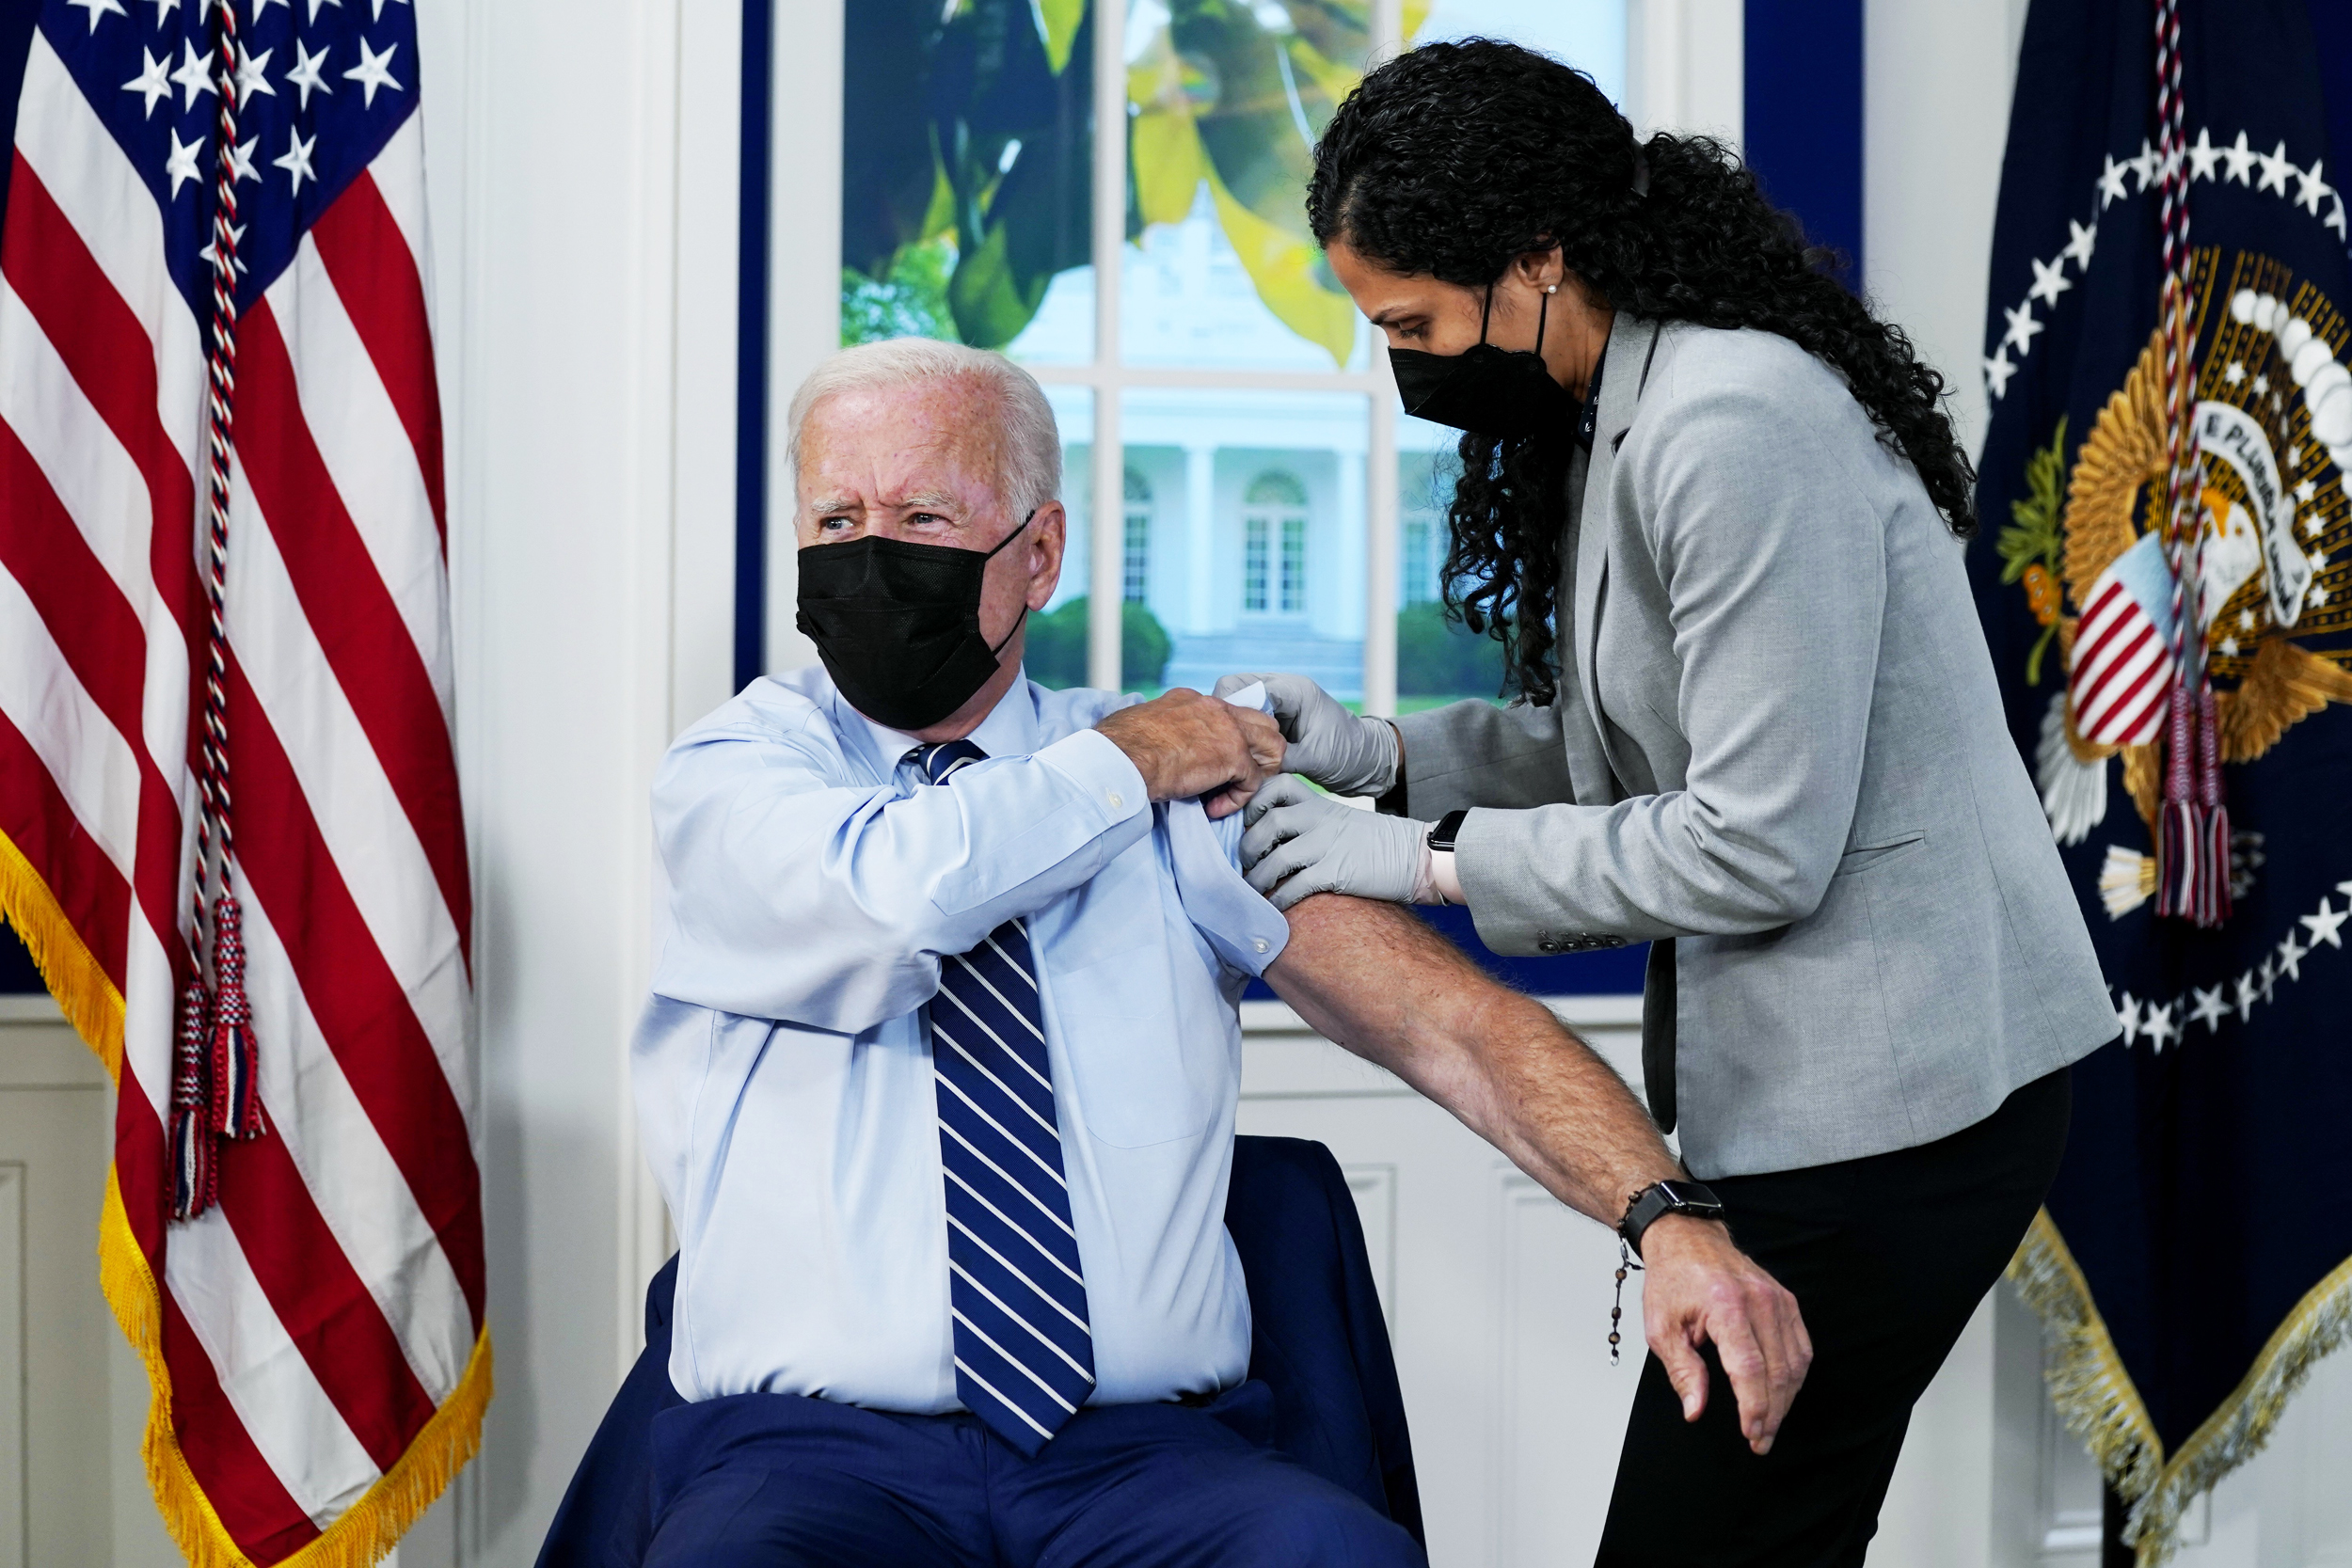 Biden receives Covid-19 booster shot, days after CDC recommends a third dose for his age range